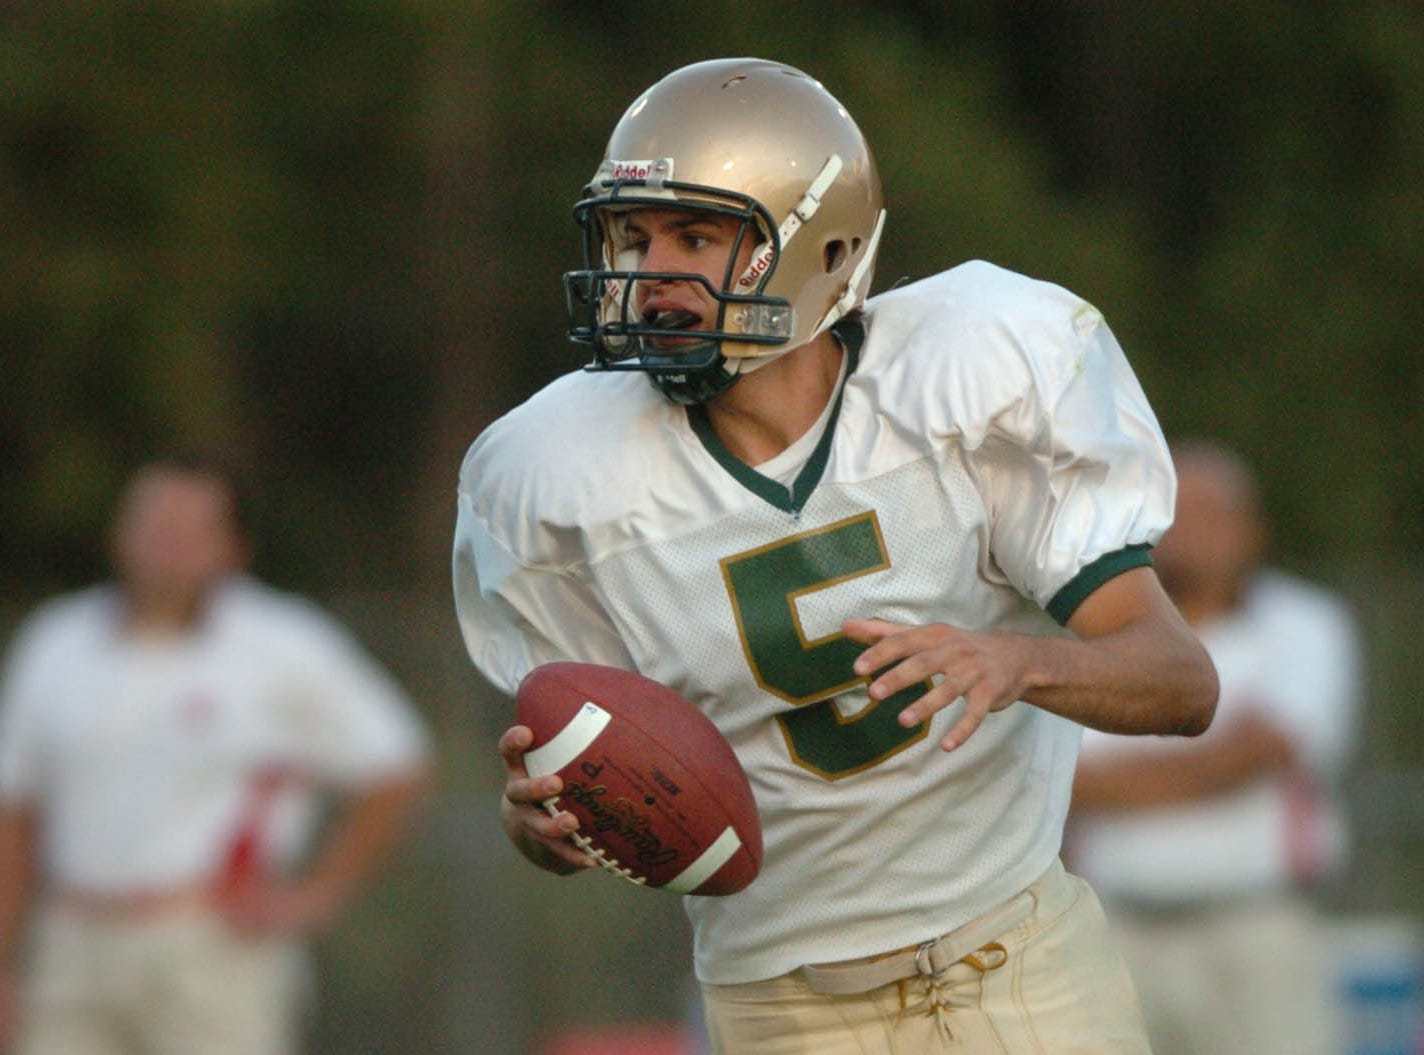 Vestal quarterback Nate Davis looks for a receiver in the first quarter during Class AA football action on the opening on the 2005 season at Baldwinsville.